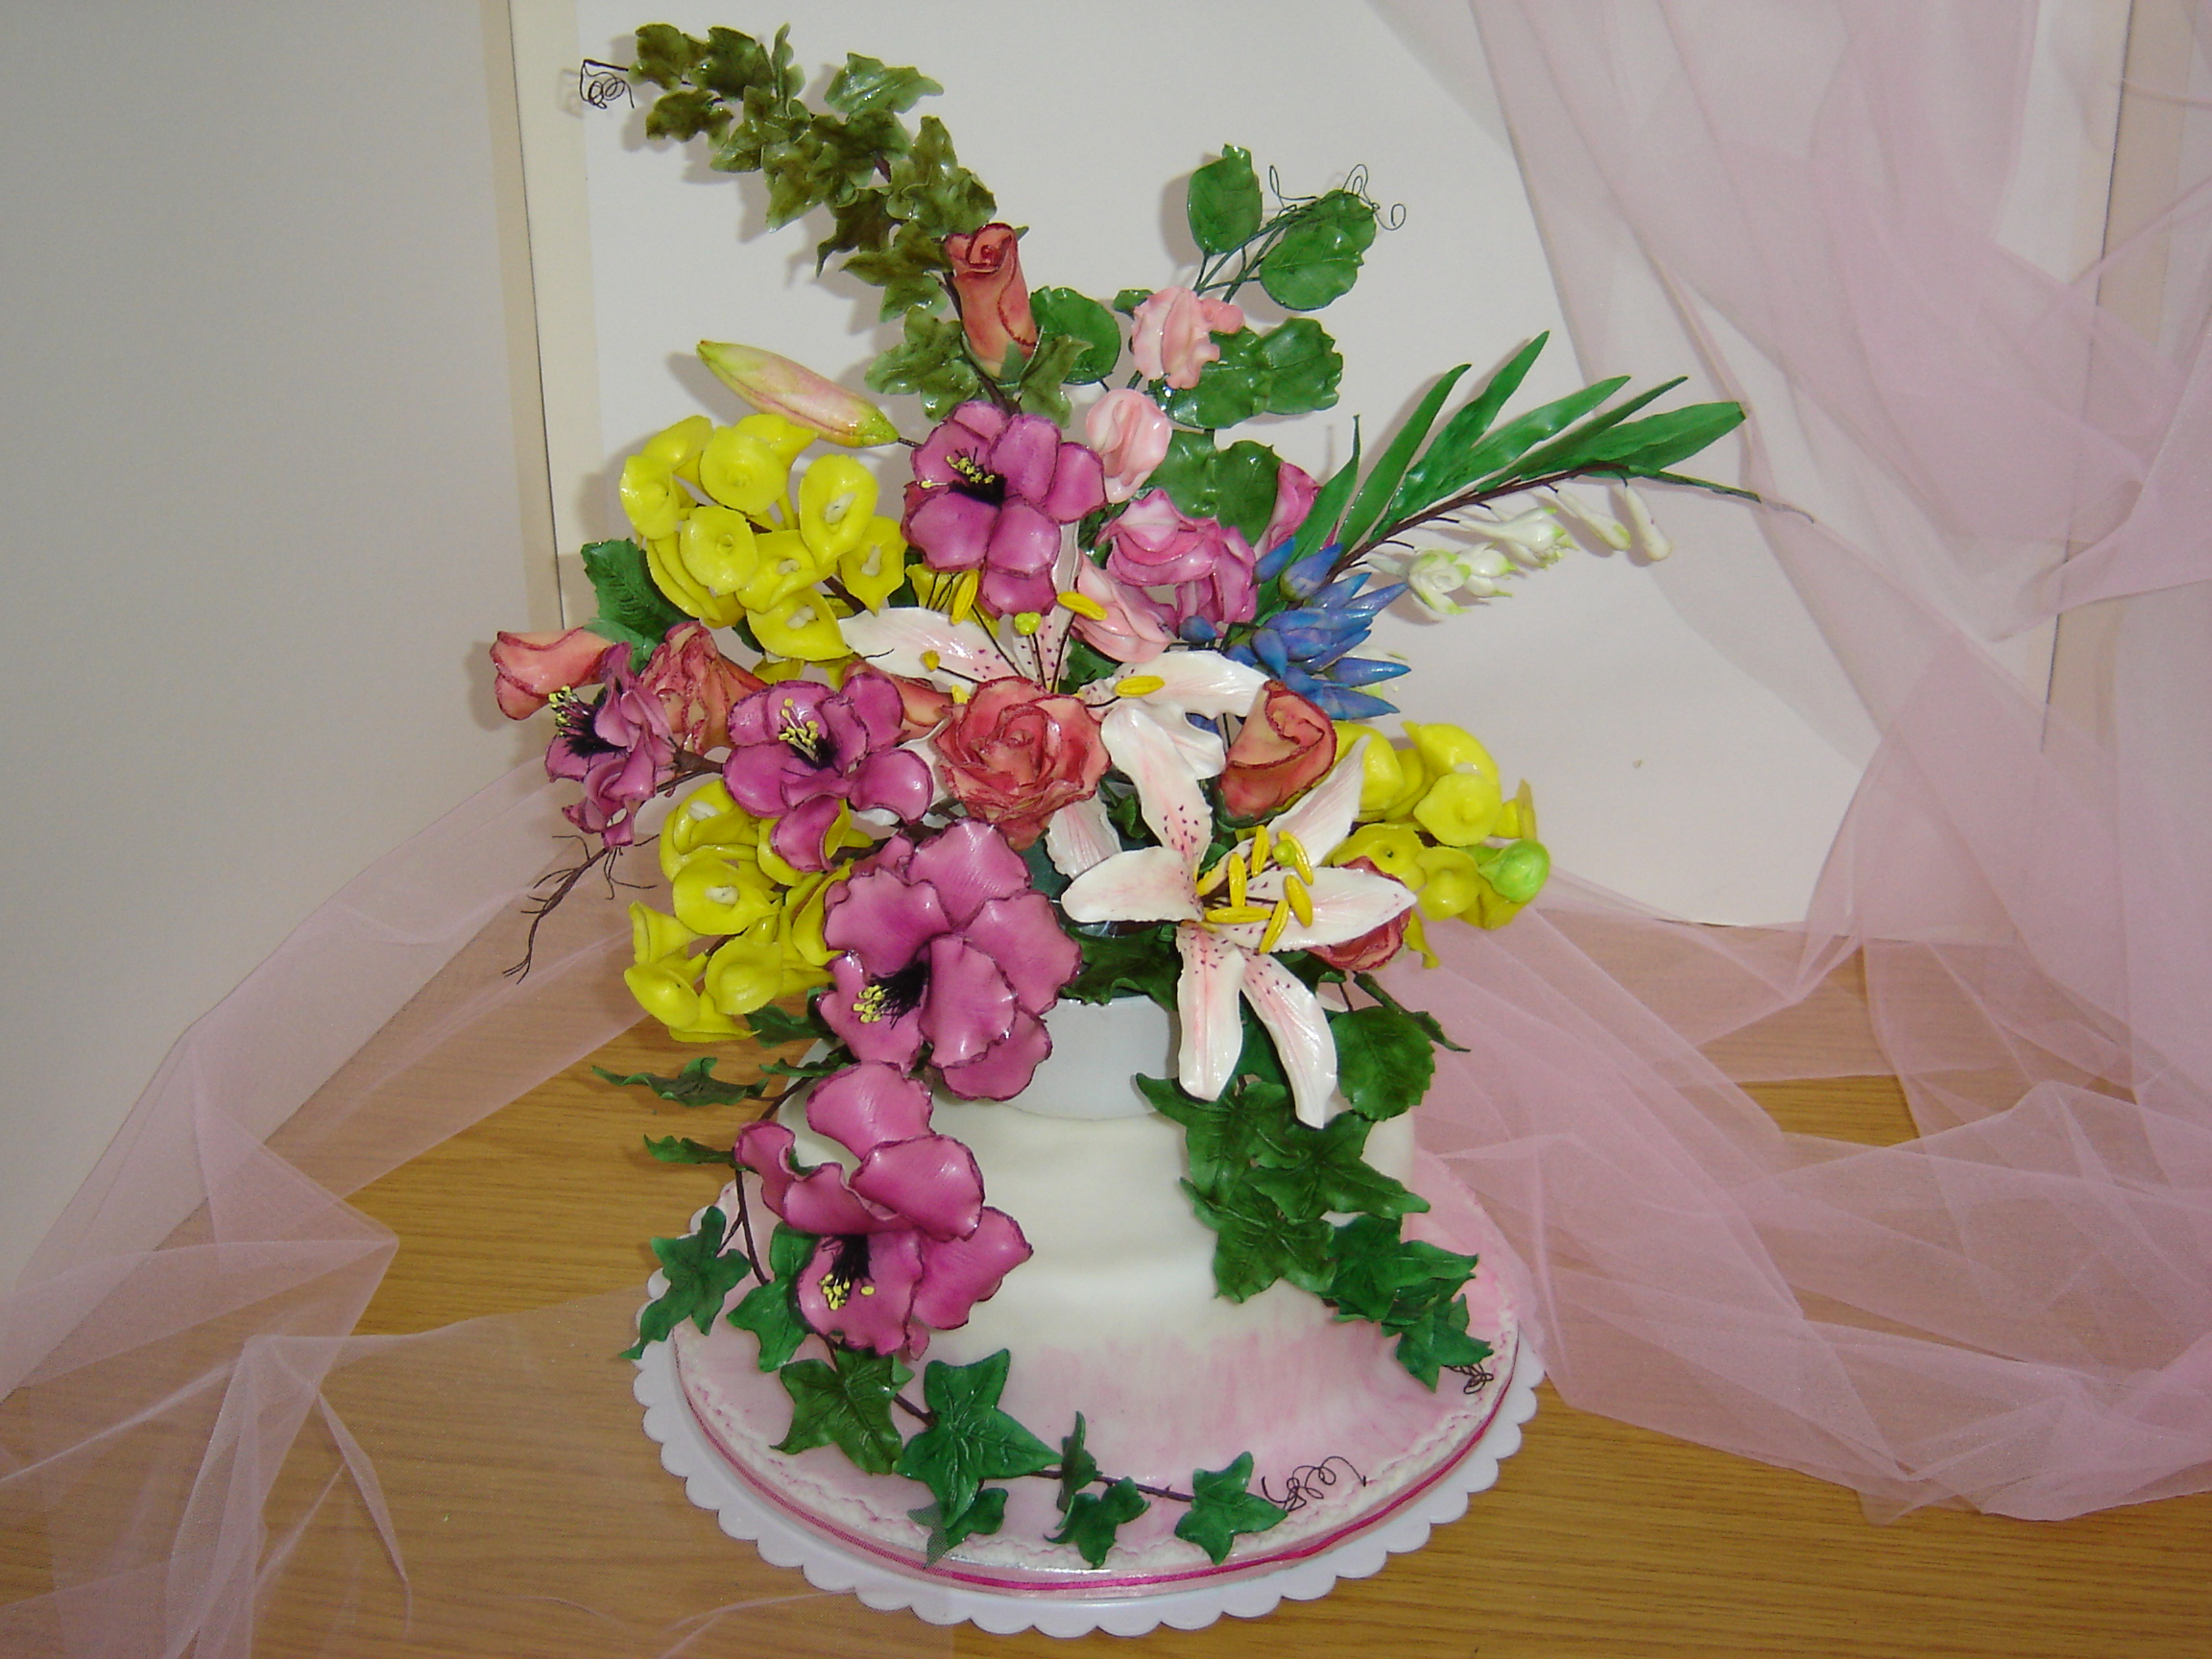 Cake Decorating Classes Mount Zion 7th Day Church Of God